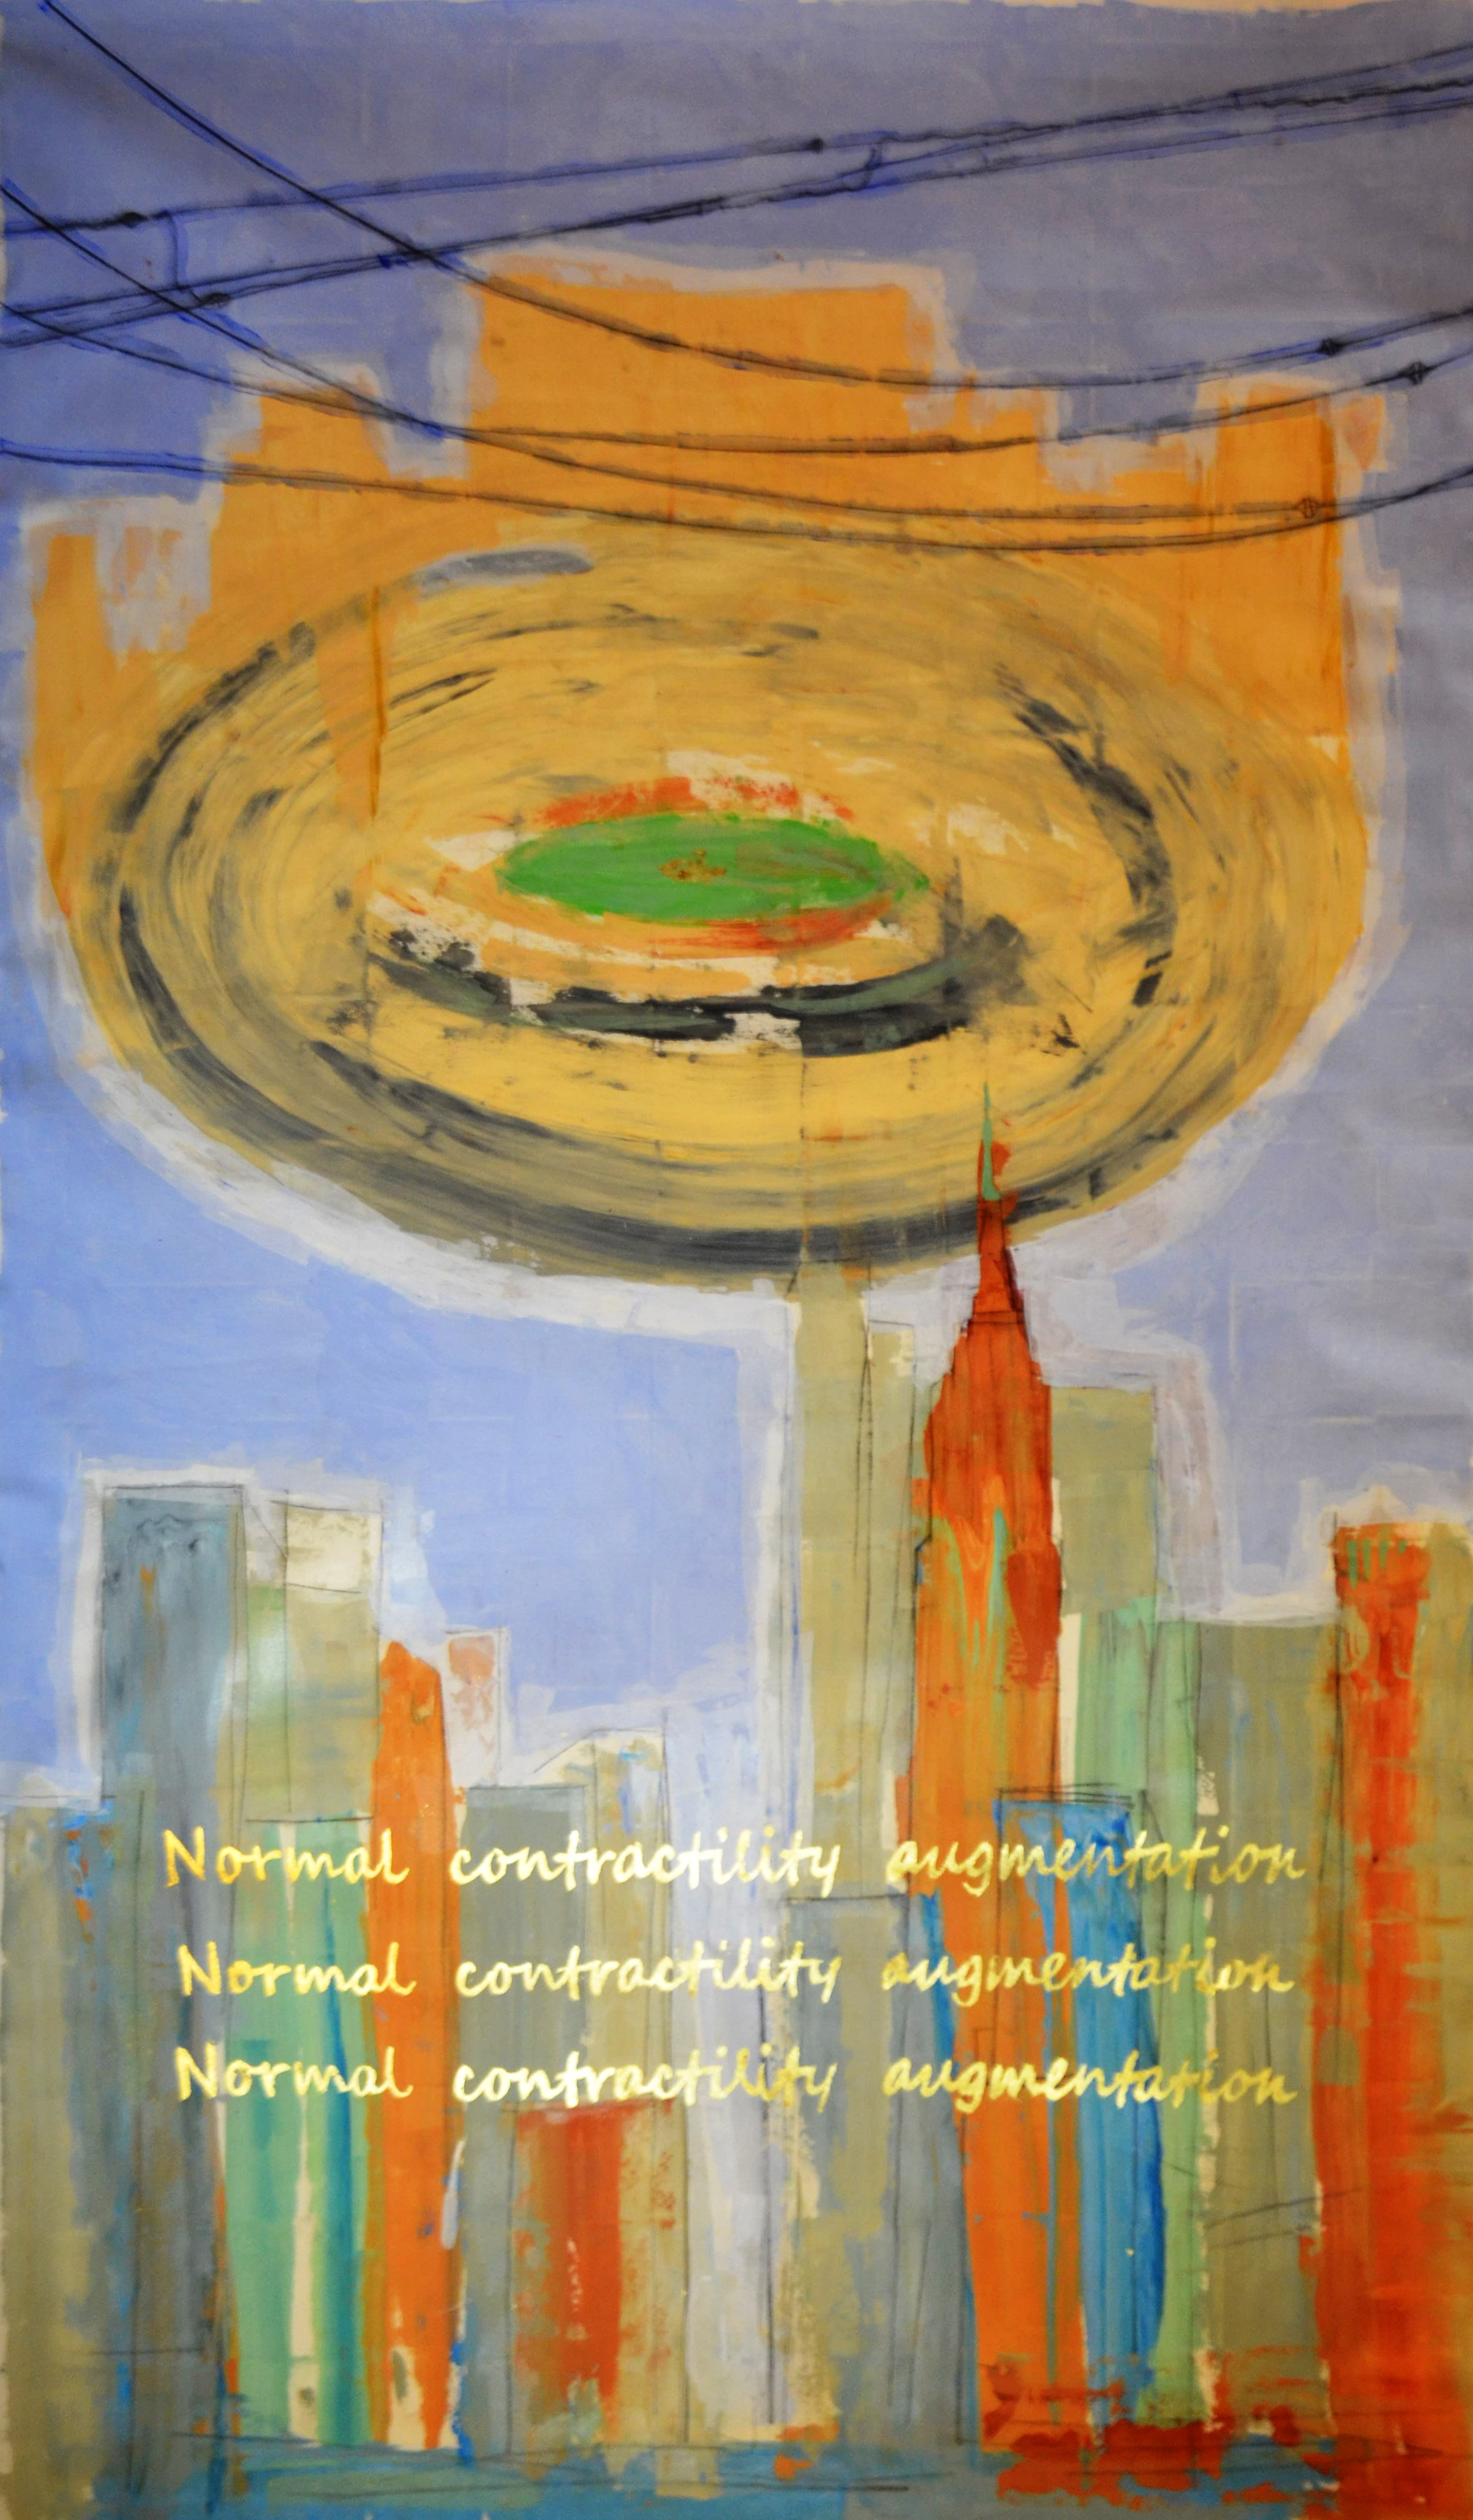 Normal contractility augmentation, acrylic, tempra and gold leaf on canvas, 146 x 78.5 Inch 2019